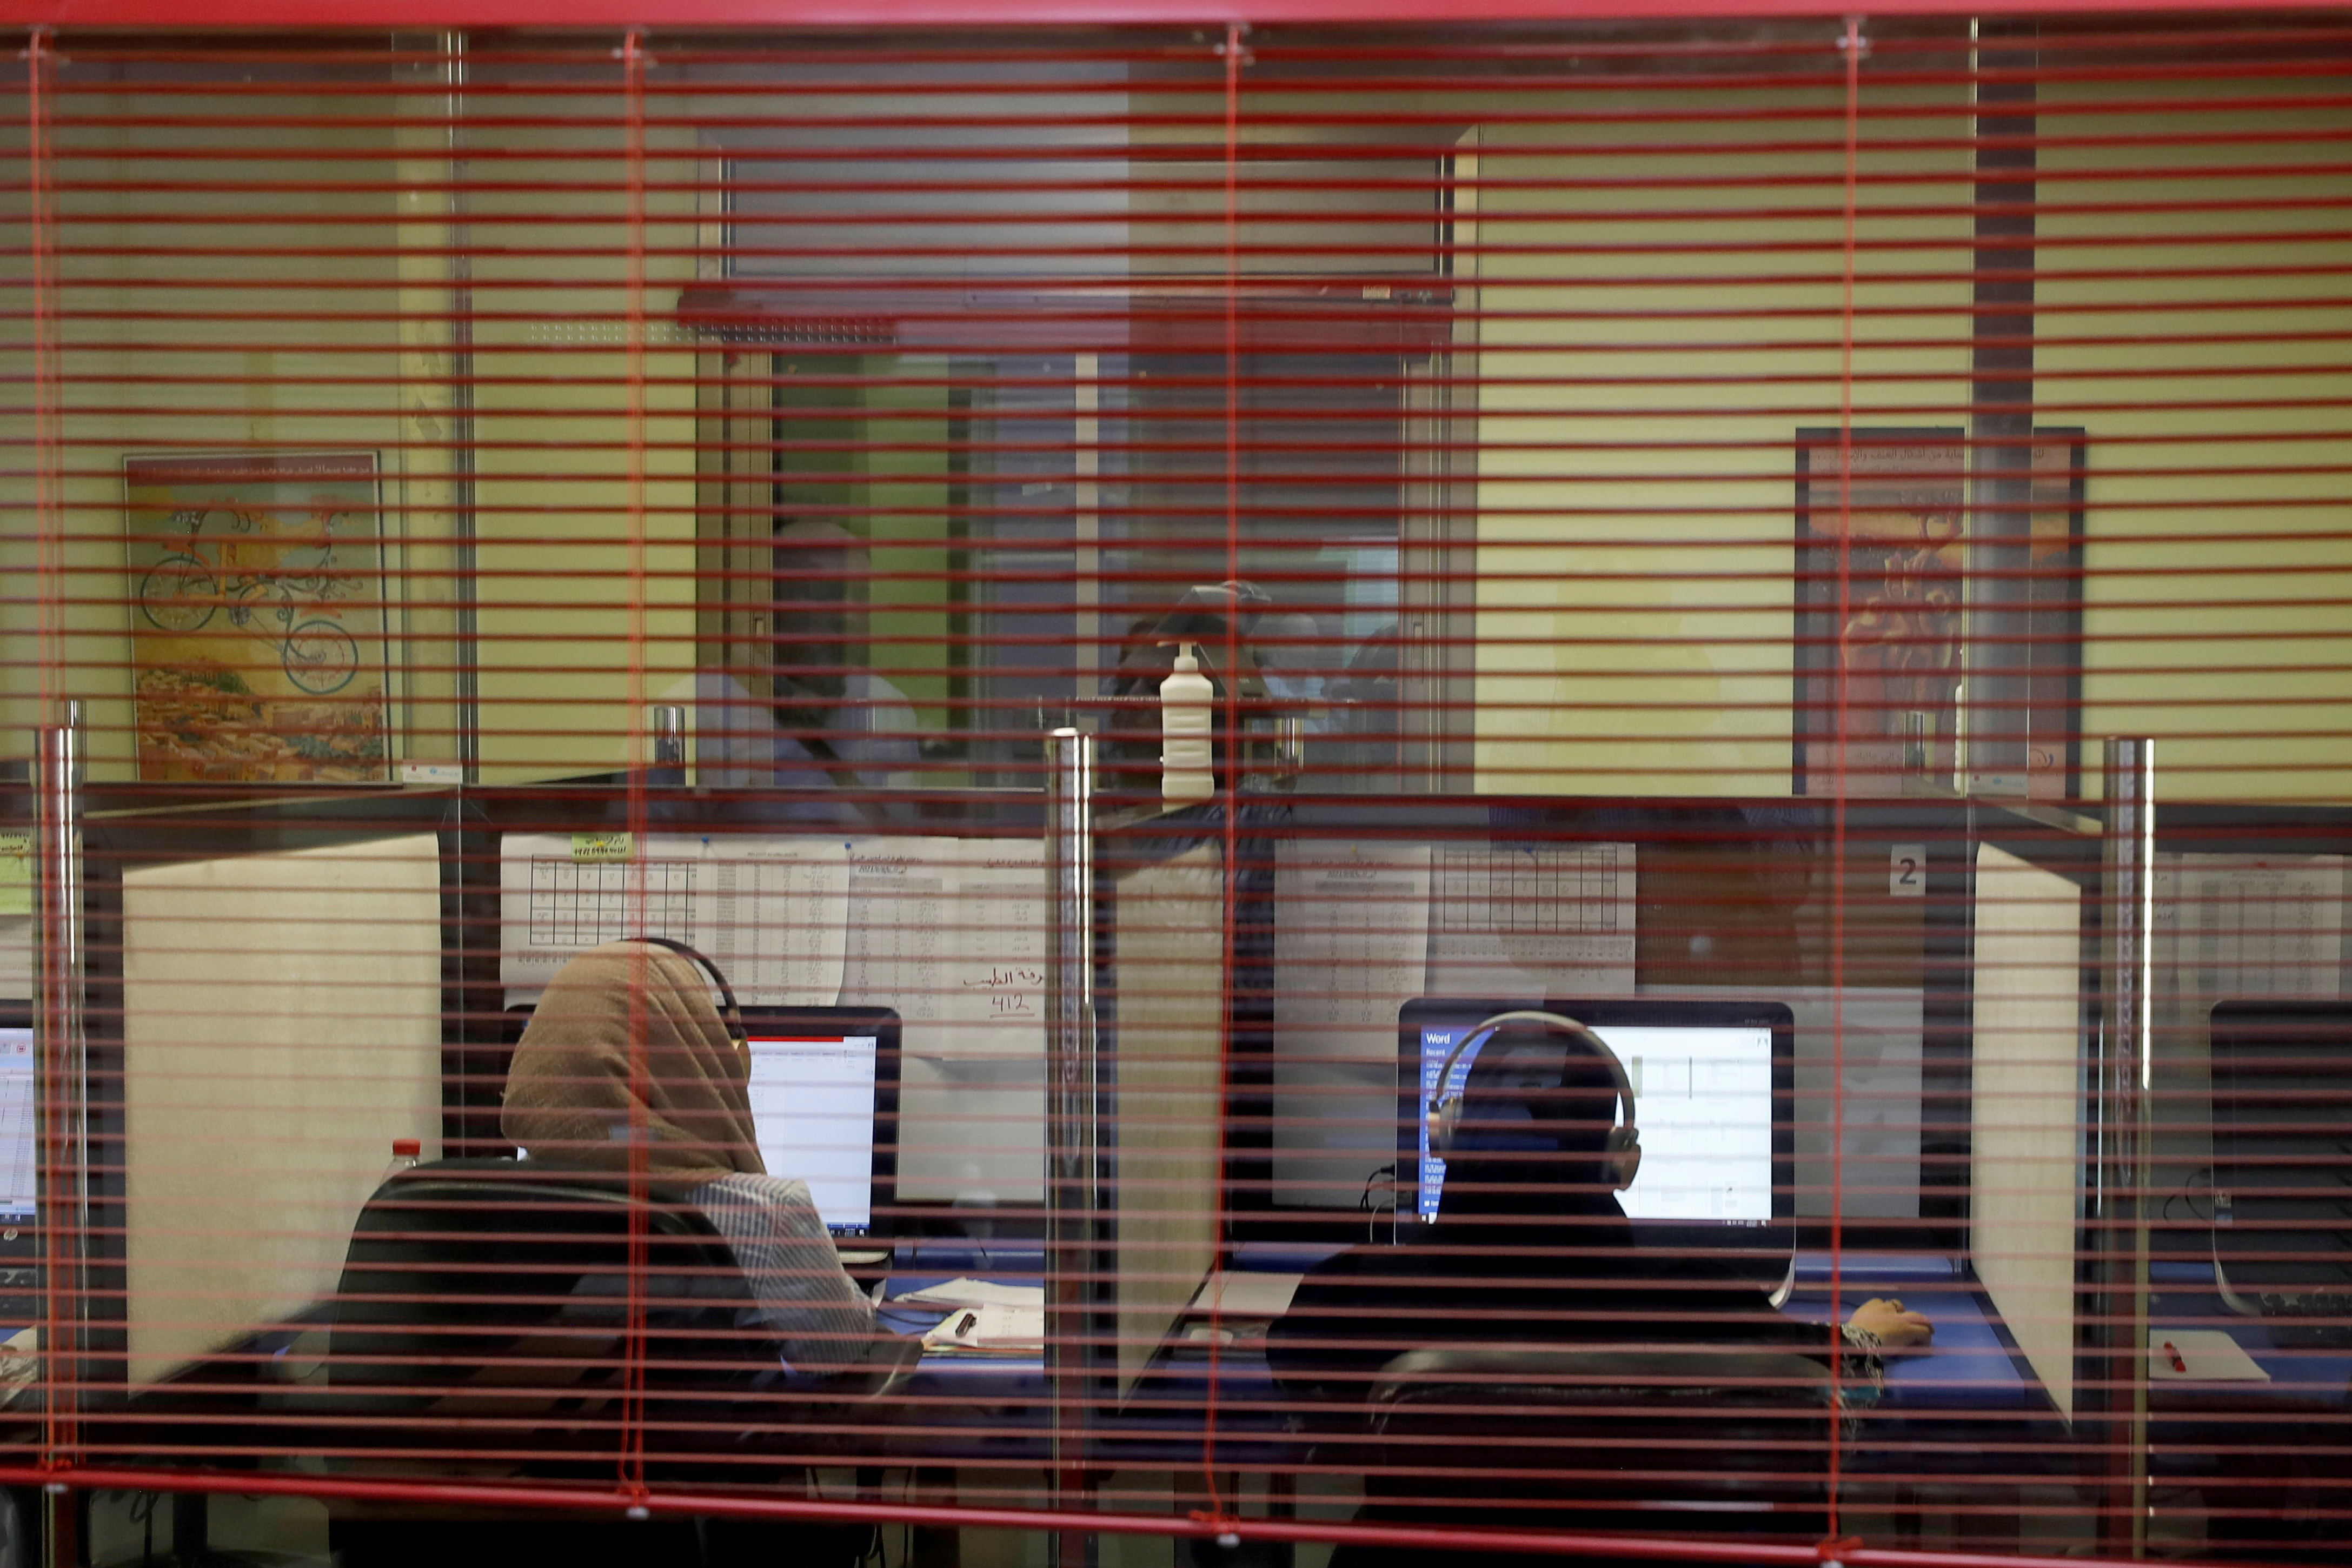 Trauma helpline counselors in Ramallah receive calls from Gaza after the 11-day conflict with Israel, in Ramallah in the Israeli-occupied West Bank June 09 , 2021. Picture taken June 09, 2021. REUTERS/Mohamad Torokman